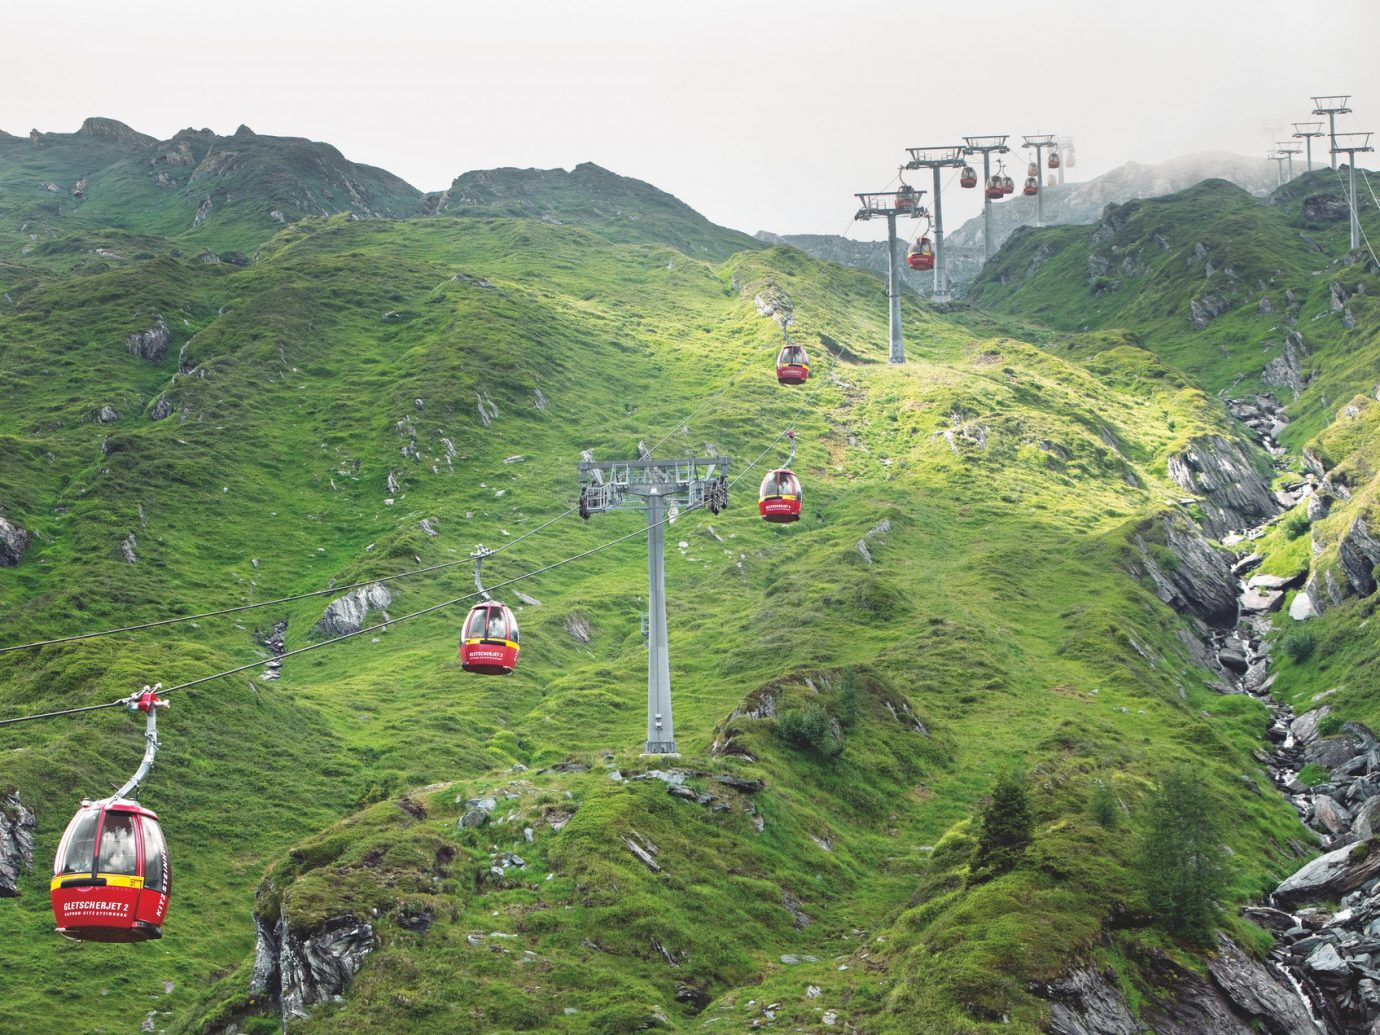 cable car europe gondola Greenery Lakes + Rivers Mountains Outdoor Activities Outdoors Outdoors + Adventure remote summer trolley mountain sky outdoor grass hill mountainous landforms Nature mountain range geological phenomenon hillside ridge mountain pass trail terrain extreme sport Adventure alps screenshot plateau Jungle aerial photography slope lush highway highland